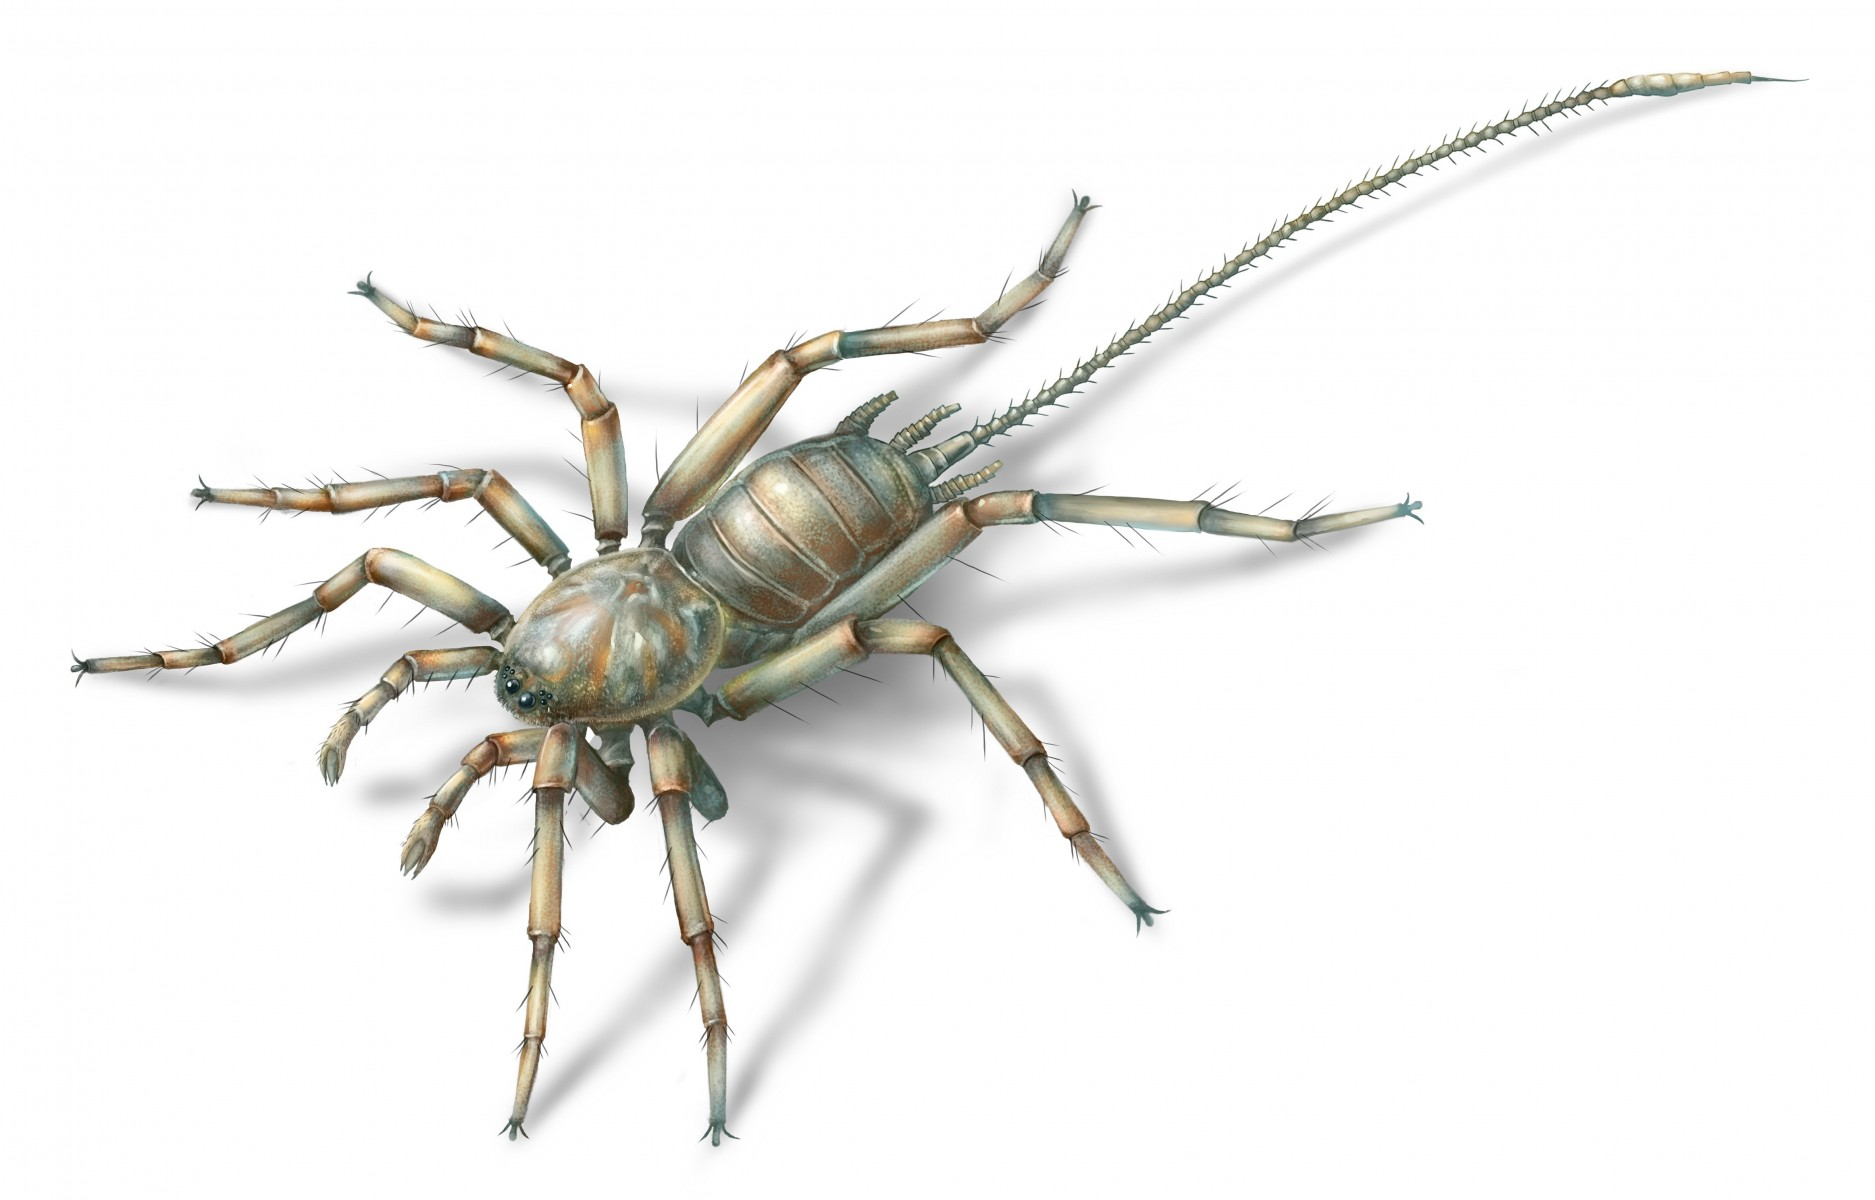 Spiders with Long Tails Found in Ancient Amber